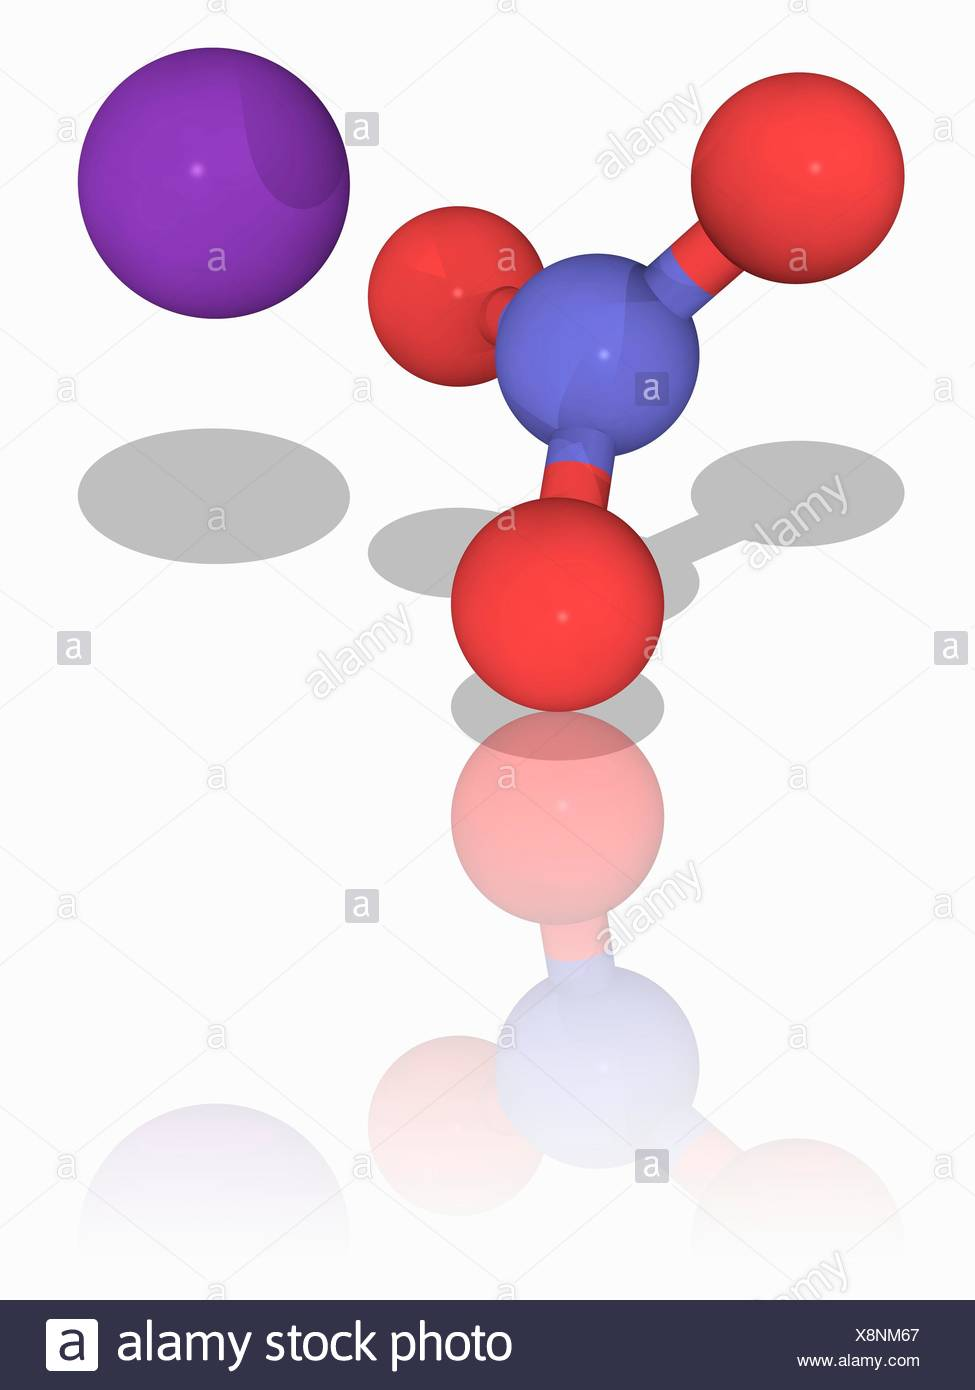 medium resolution of molecular model of the inorganic chemical compound potassium nitrate kno3